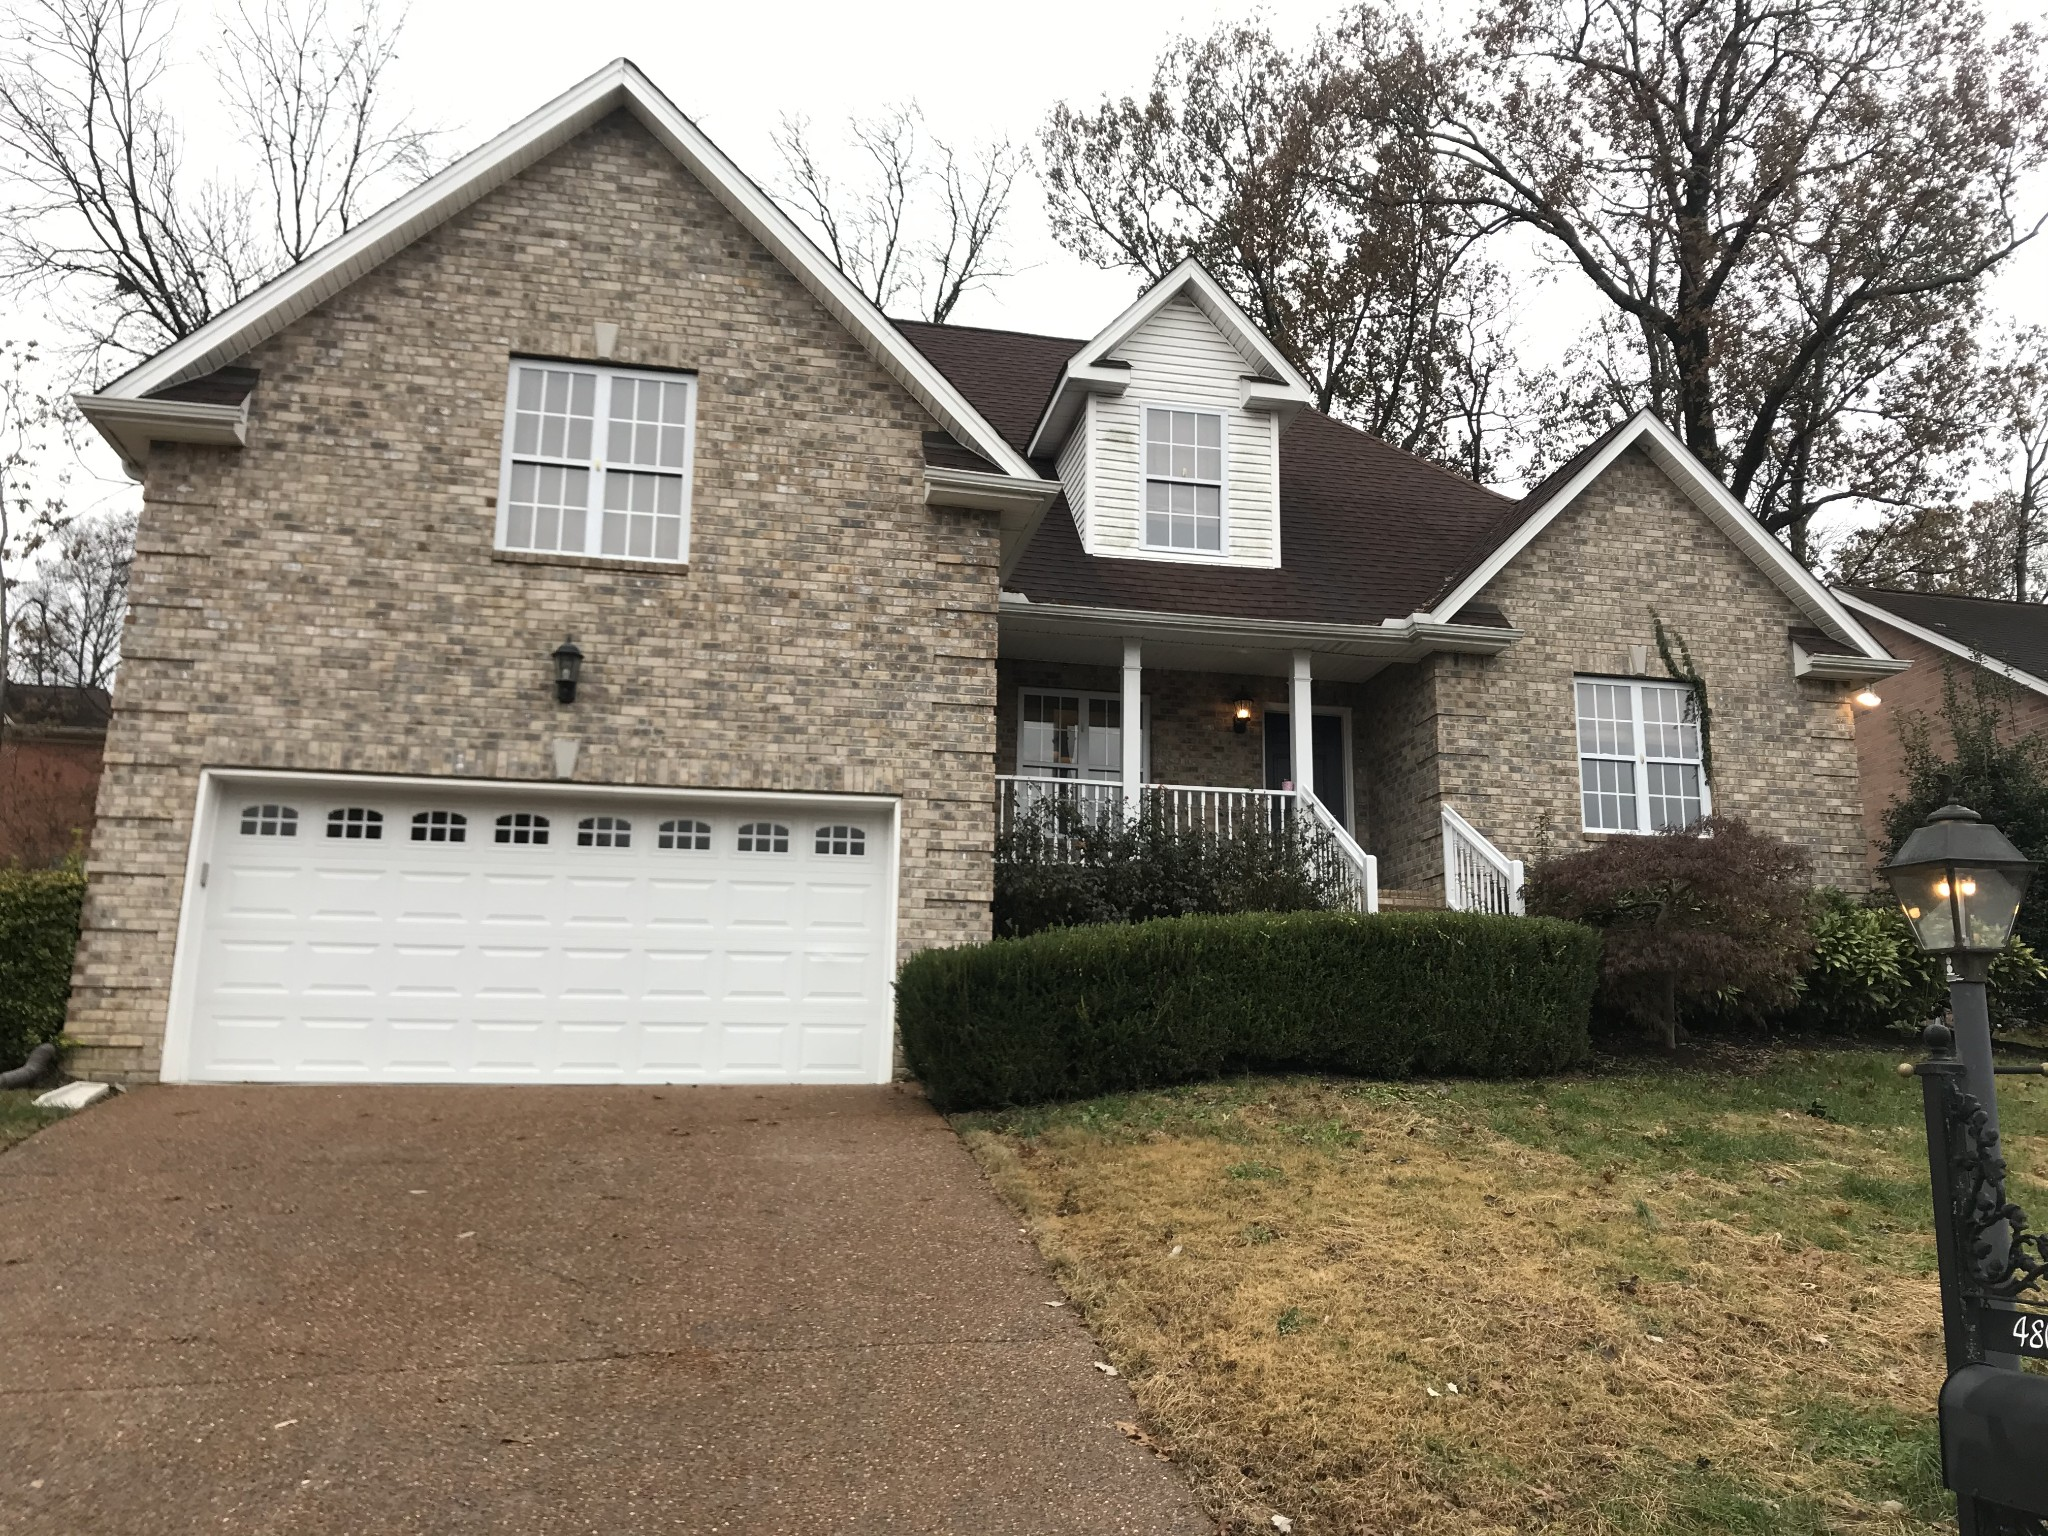 4809 Peninsula Point Dr, Hermitage in Davidson County County, TN 37076 Home for Sale